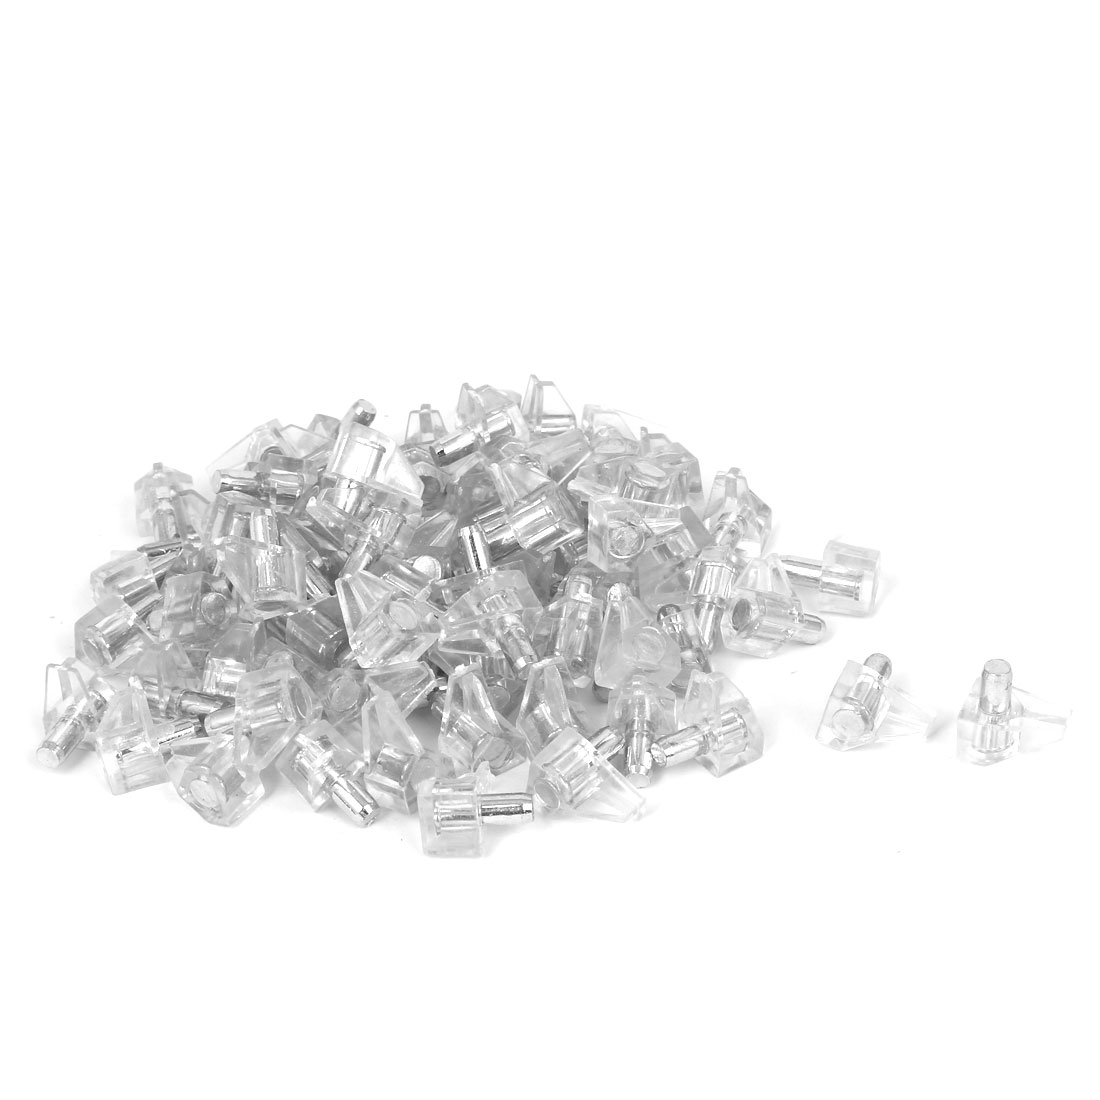 100 Pcs 5mm Dia Support Peg Stud Pin for Kitchen Shelf Cupboard Cabinet